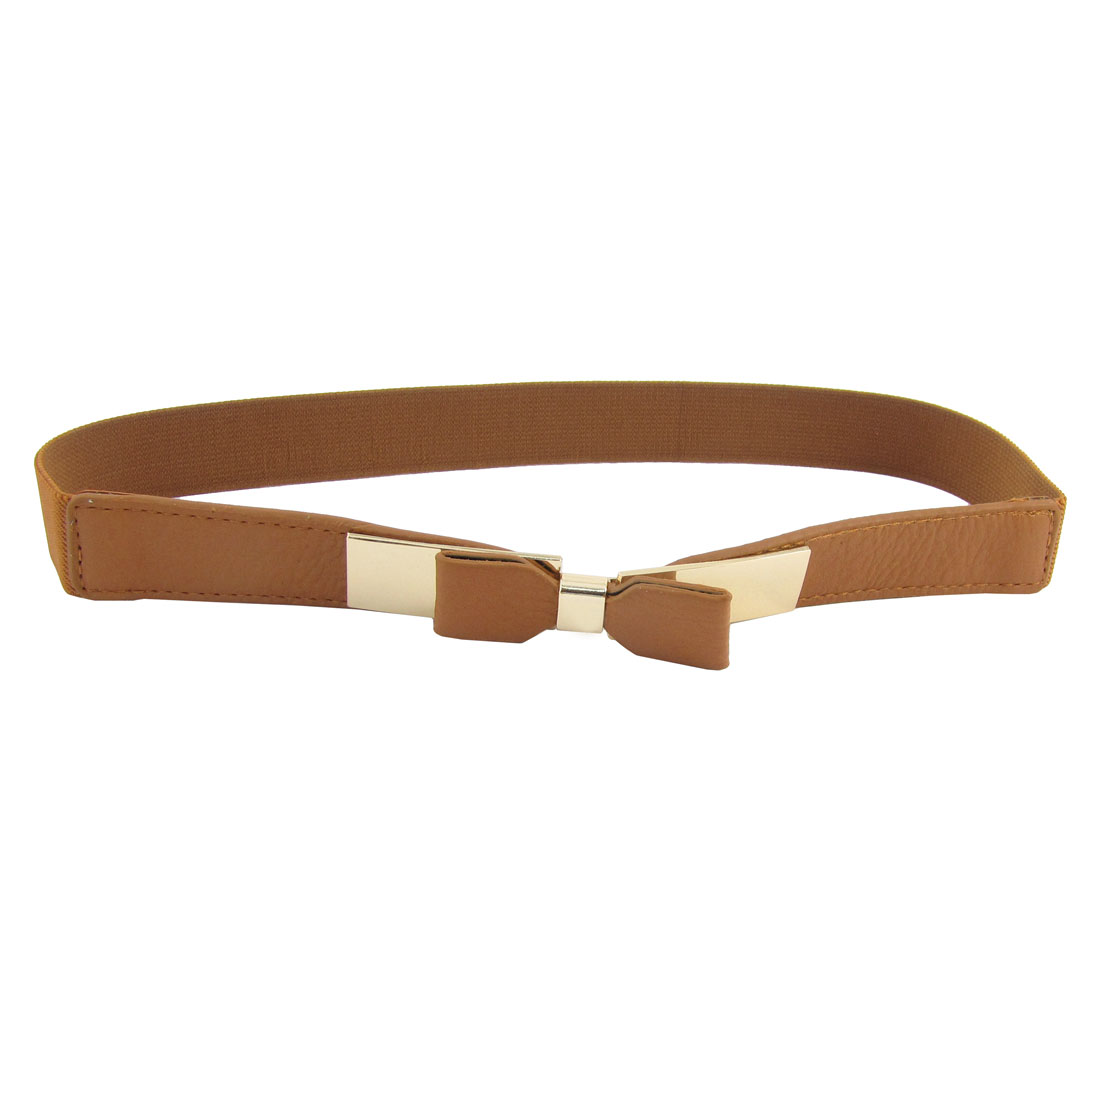 Metal Interlock Buckle Faux Leather Part Silm Belt Stretchy Waistband Brown